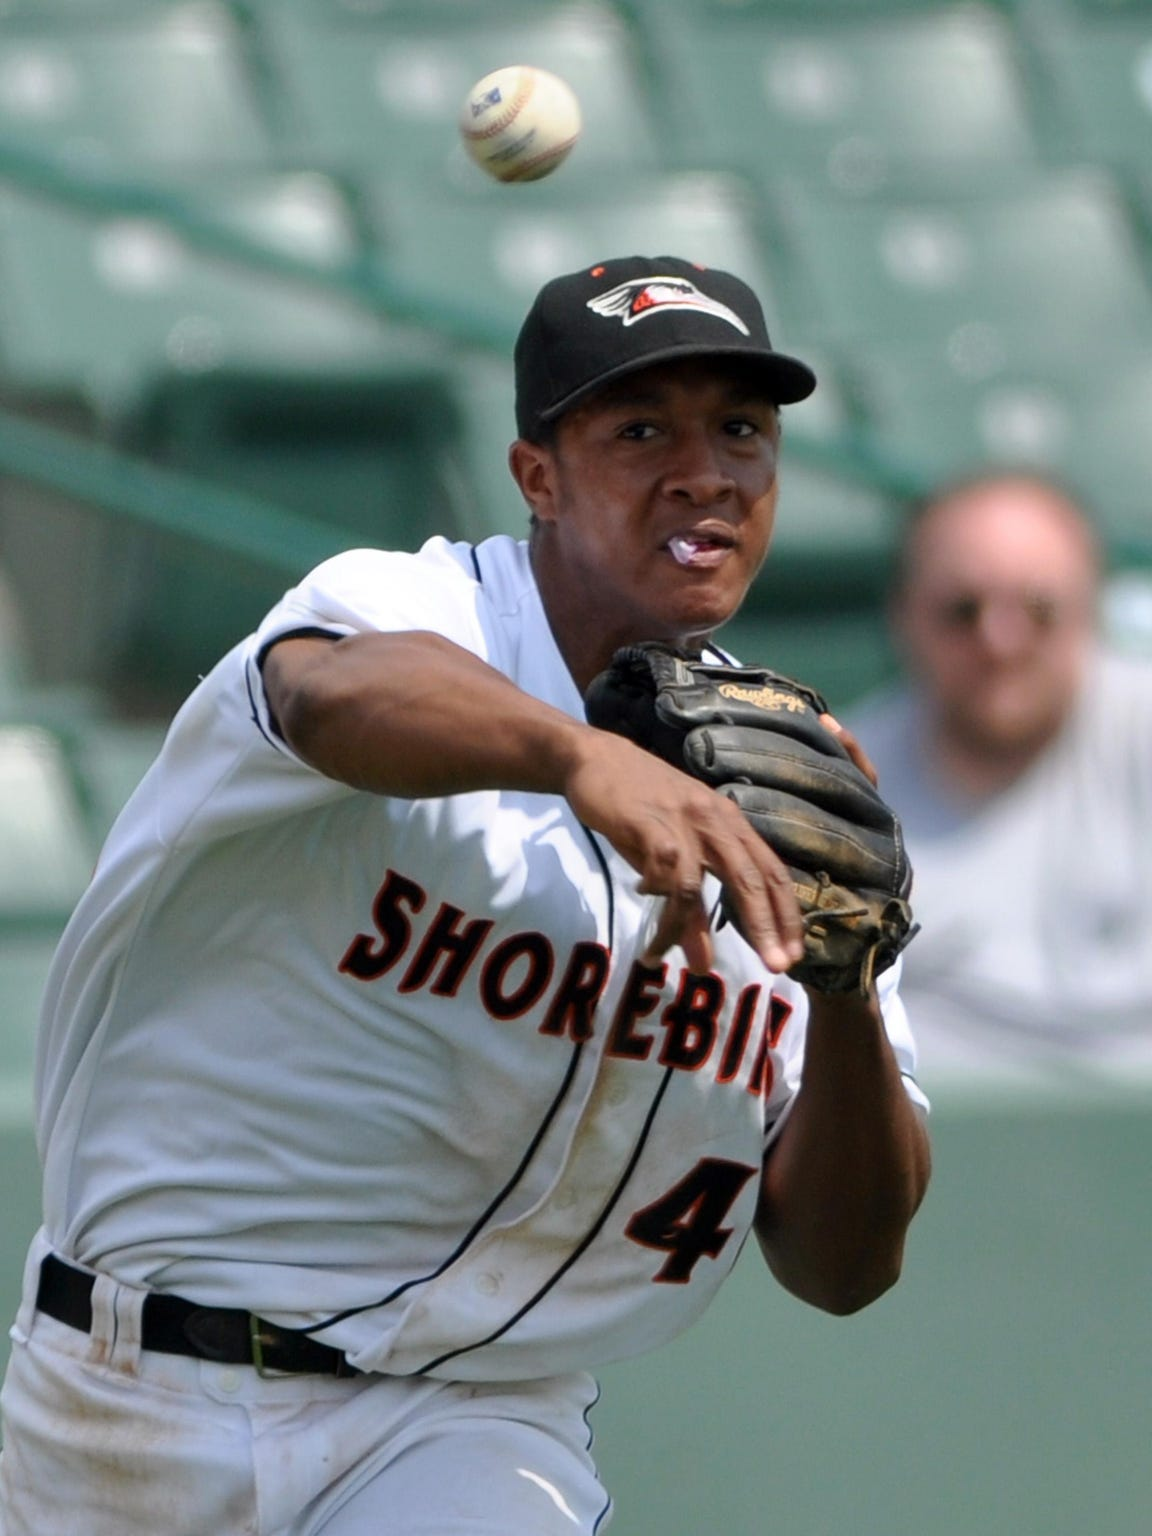 Delmarva's Jonathan Schoop throws to first base during